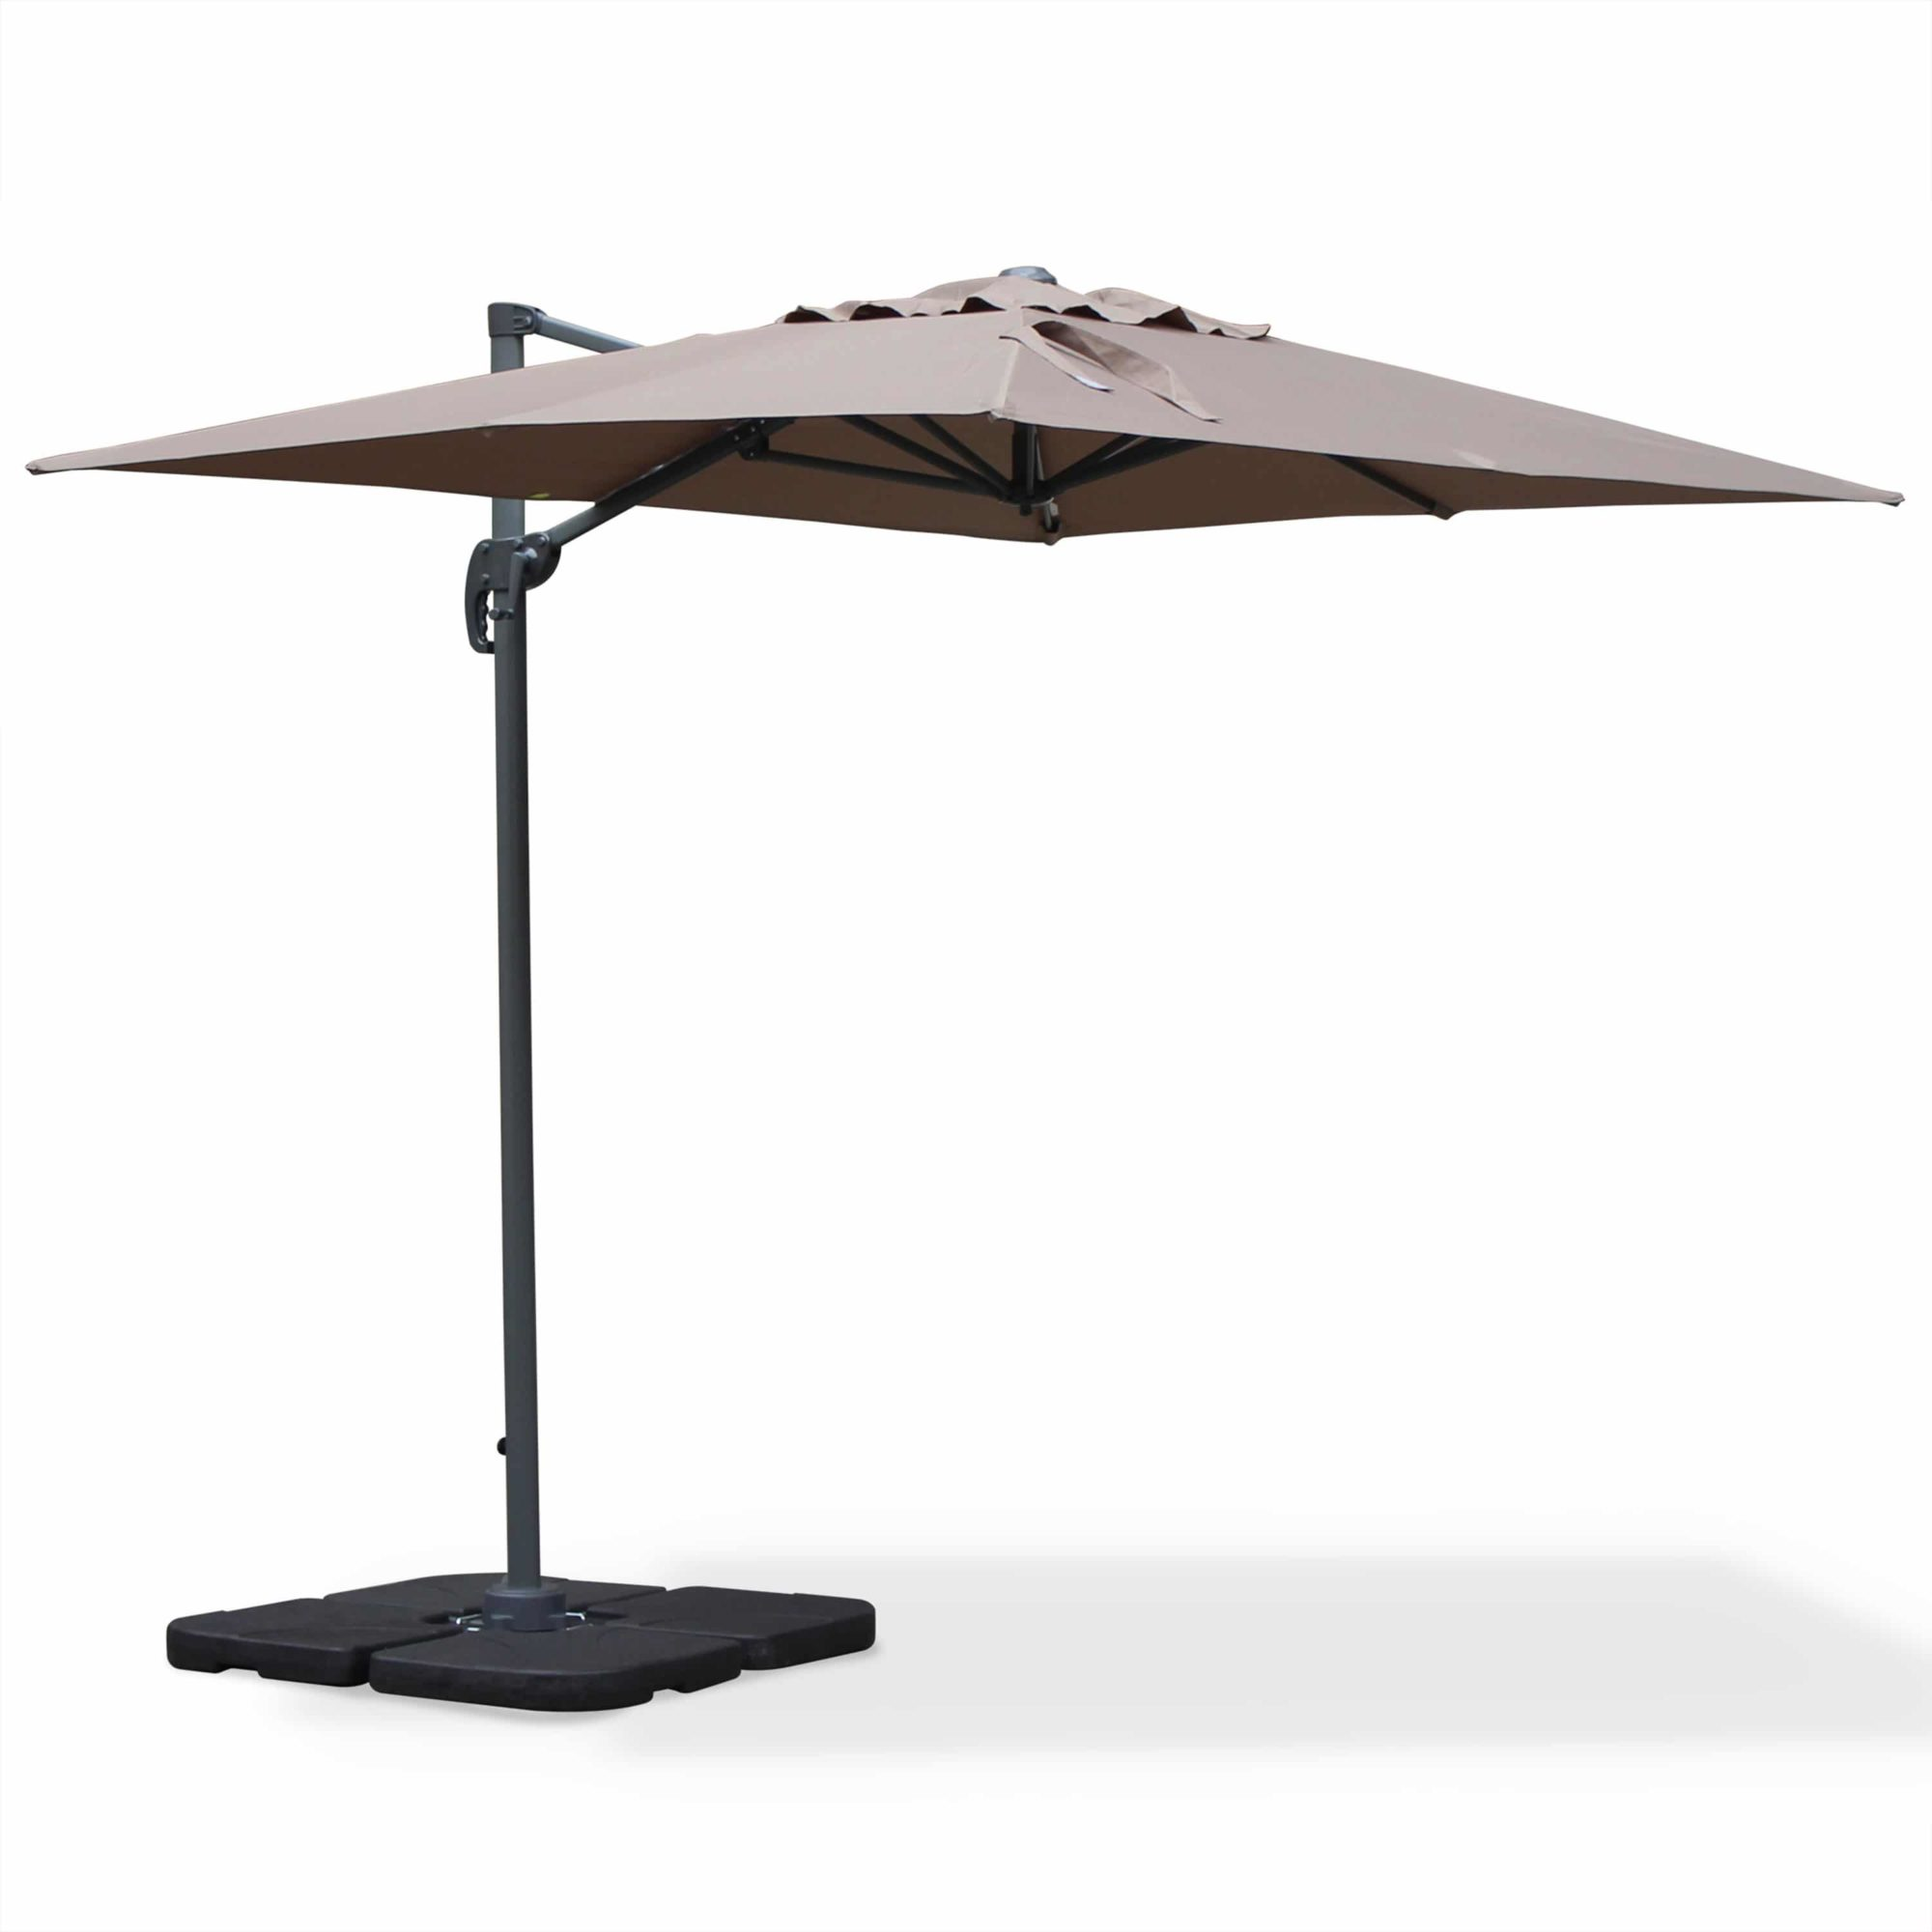 Outdoor Cantilever Umbrella Aluminium 2x3m Taupe (Brown)